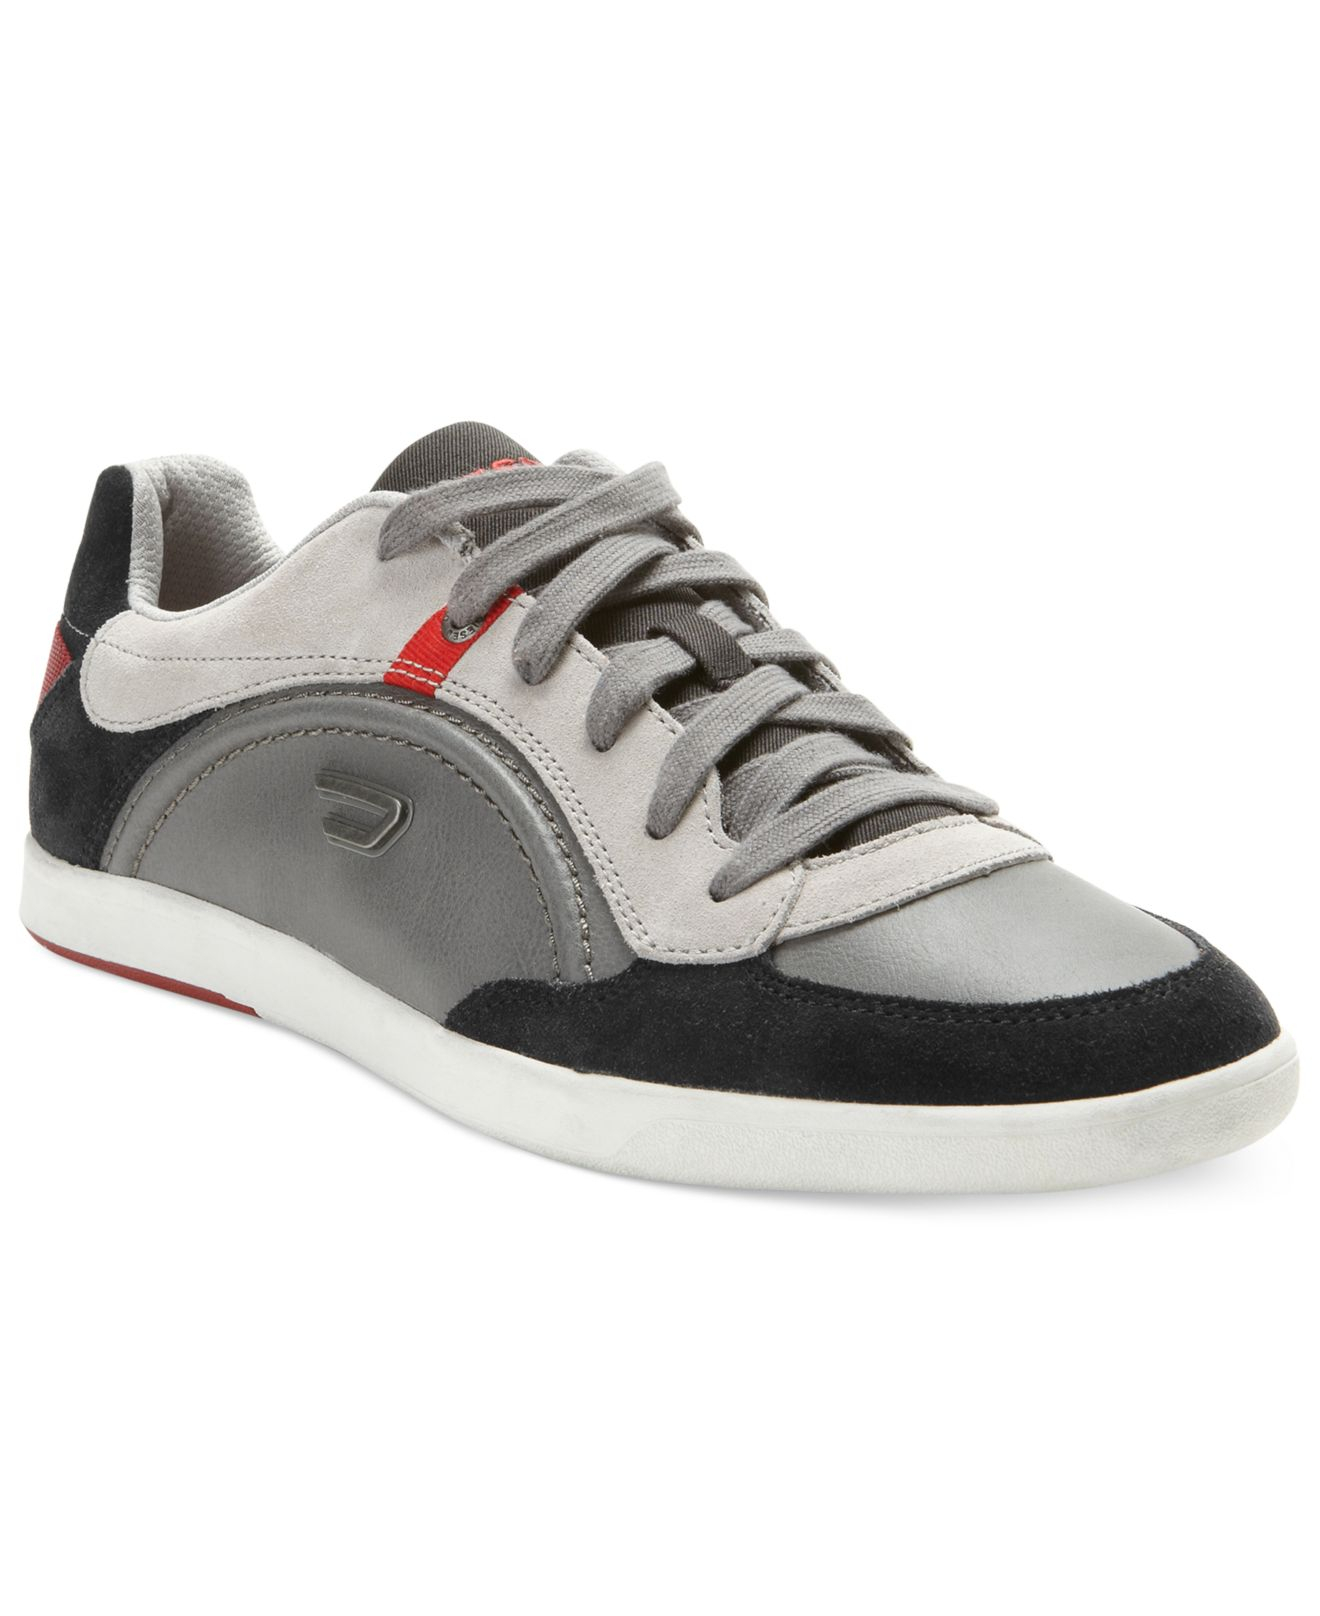 Diesel Mens Shoes Uk